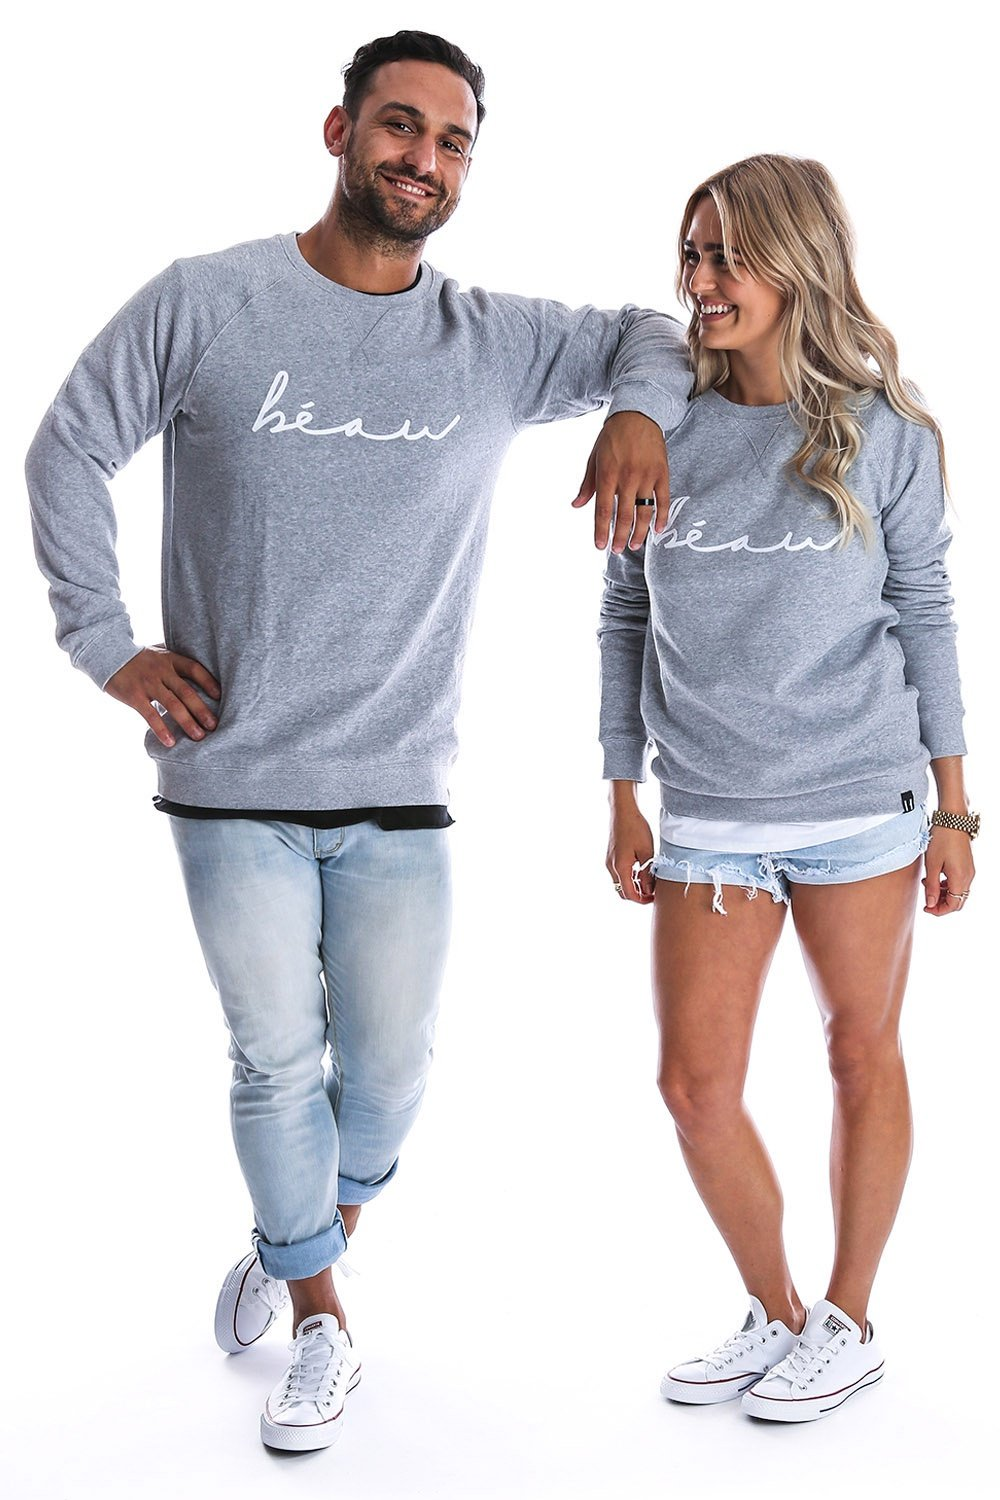 crew neck sweater with unisex fit